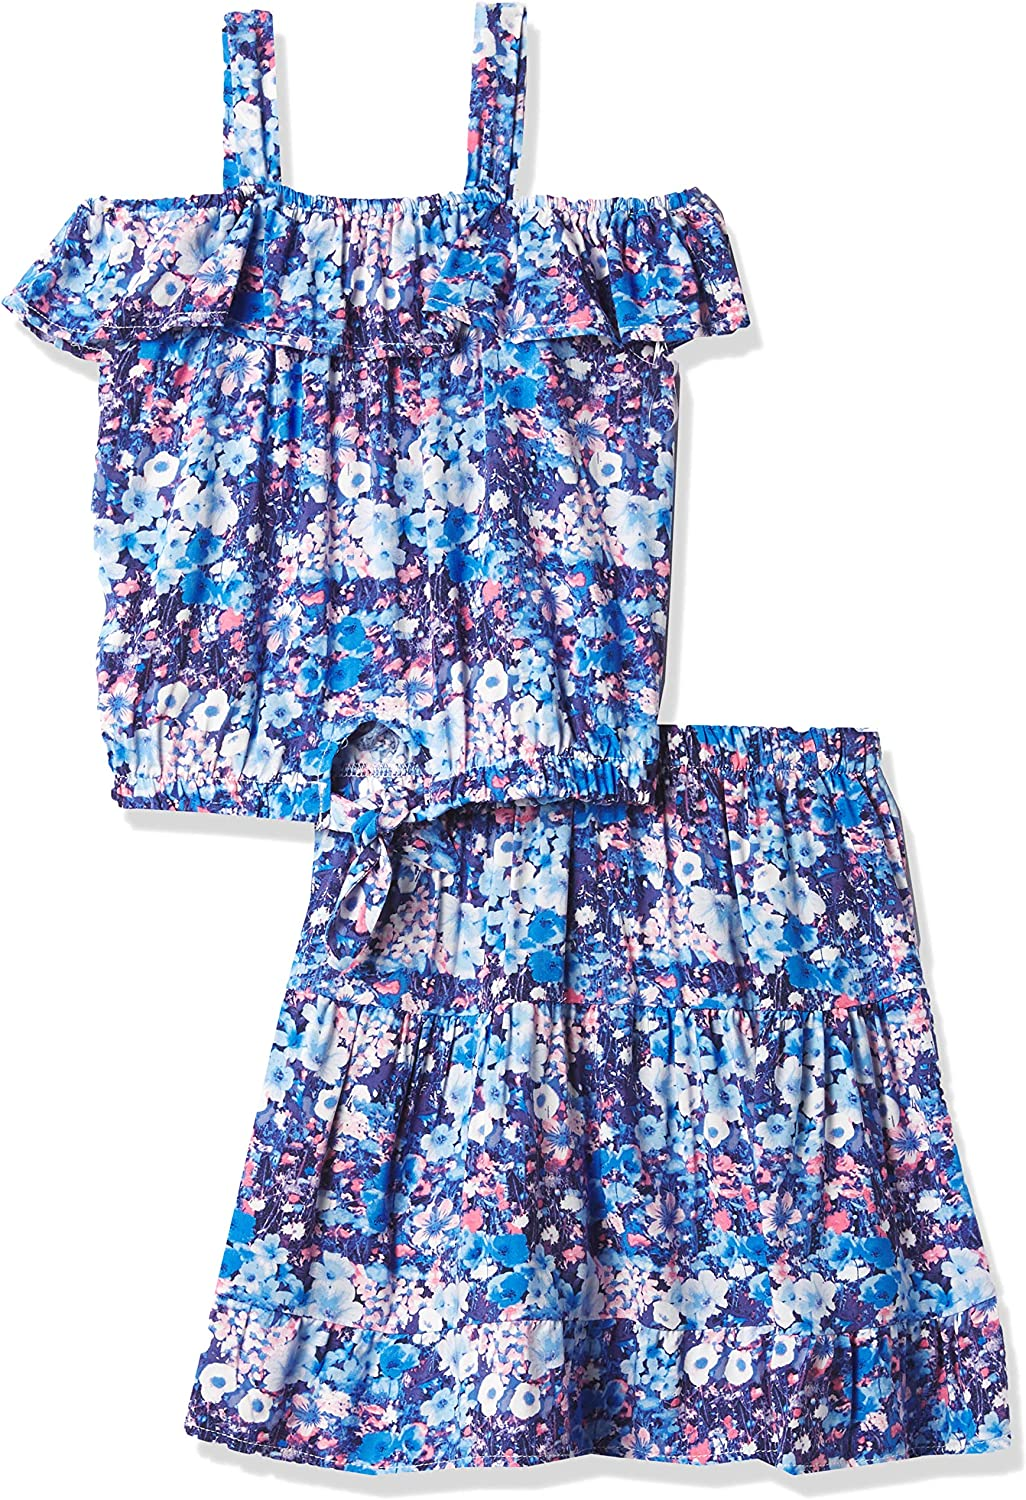 Speechless girls Flowy Top and Skirt Set: Clothing, Shoes & Jewelry